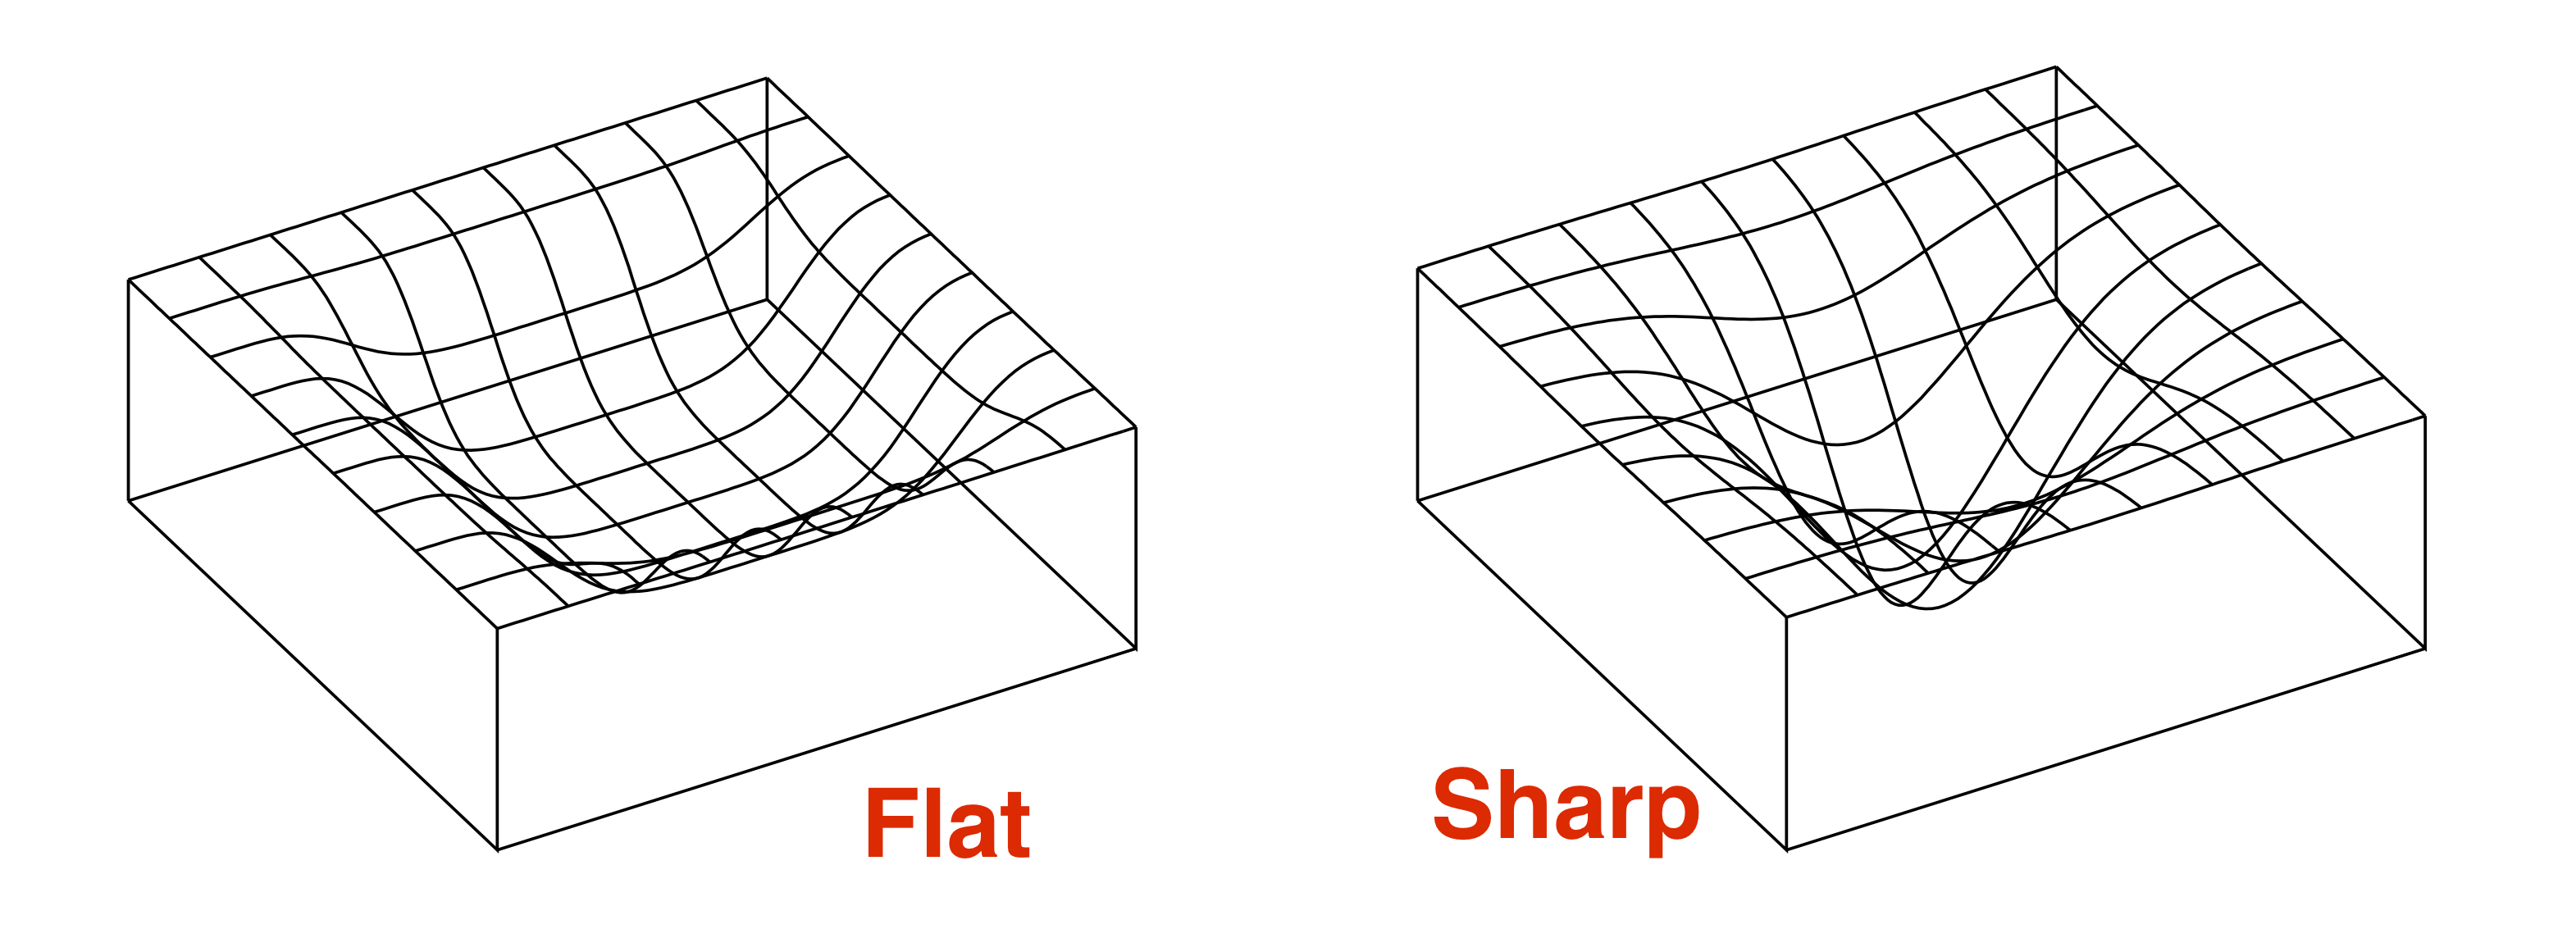 Flat vs sharp minima